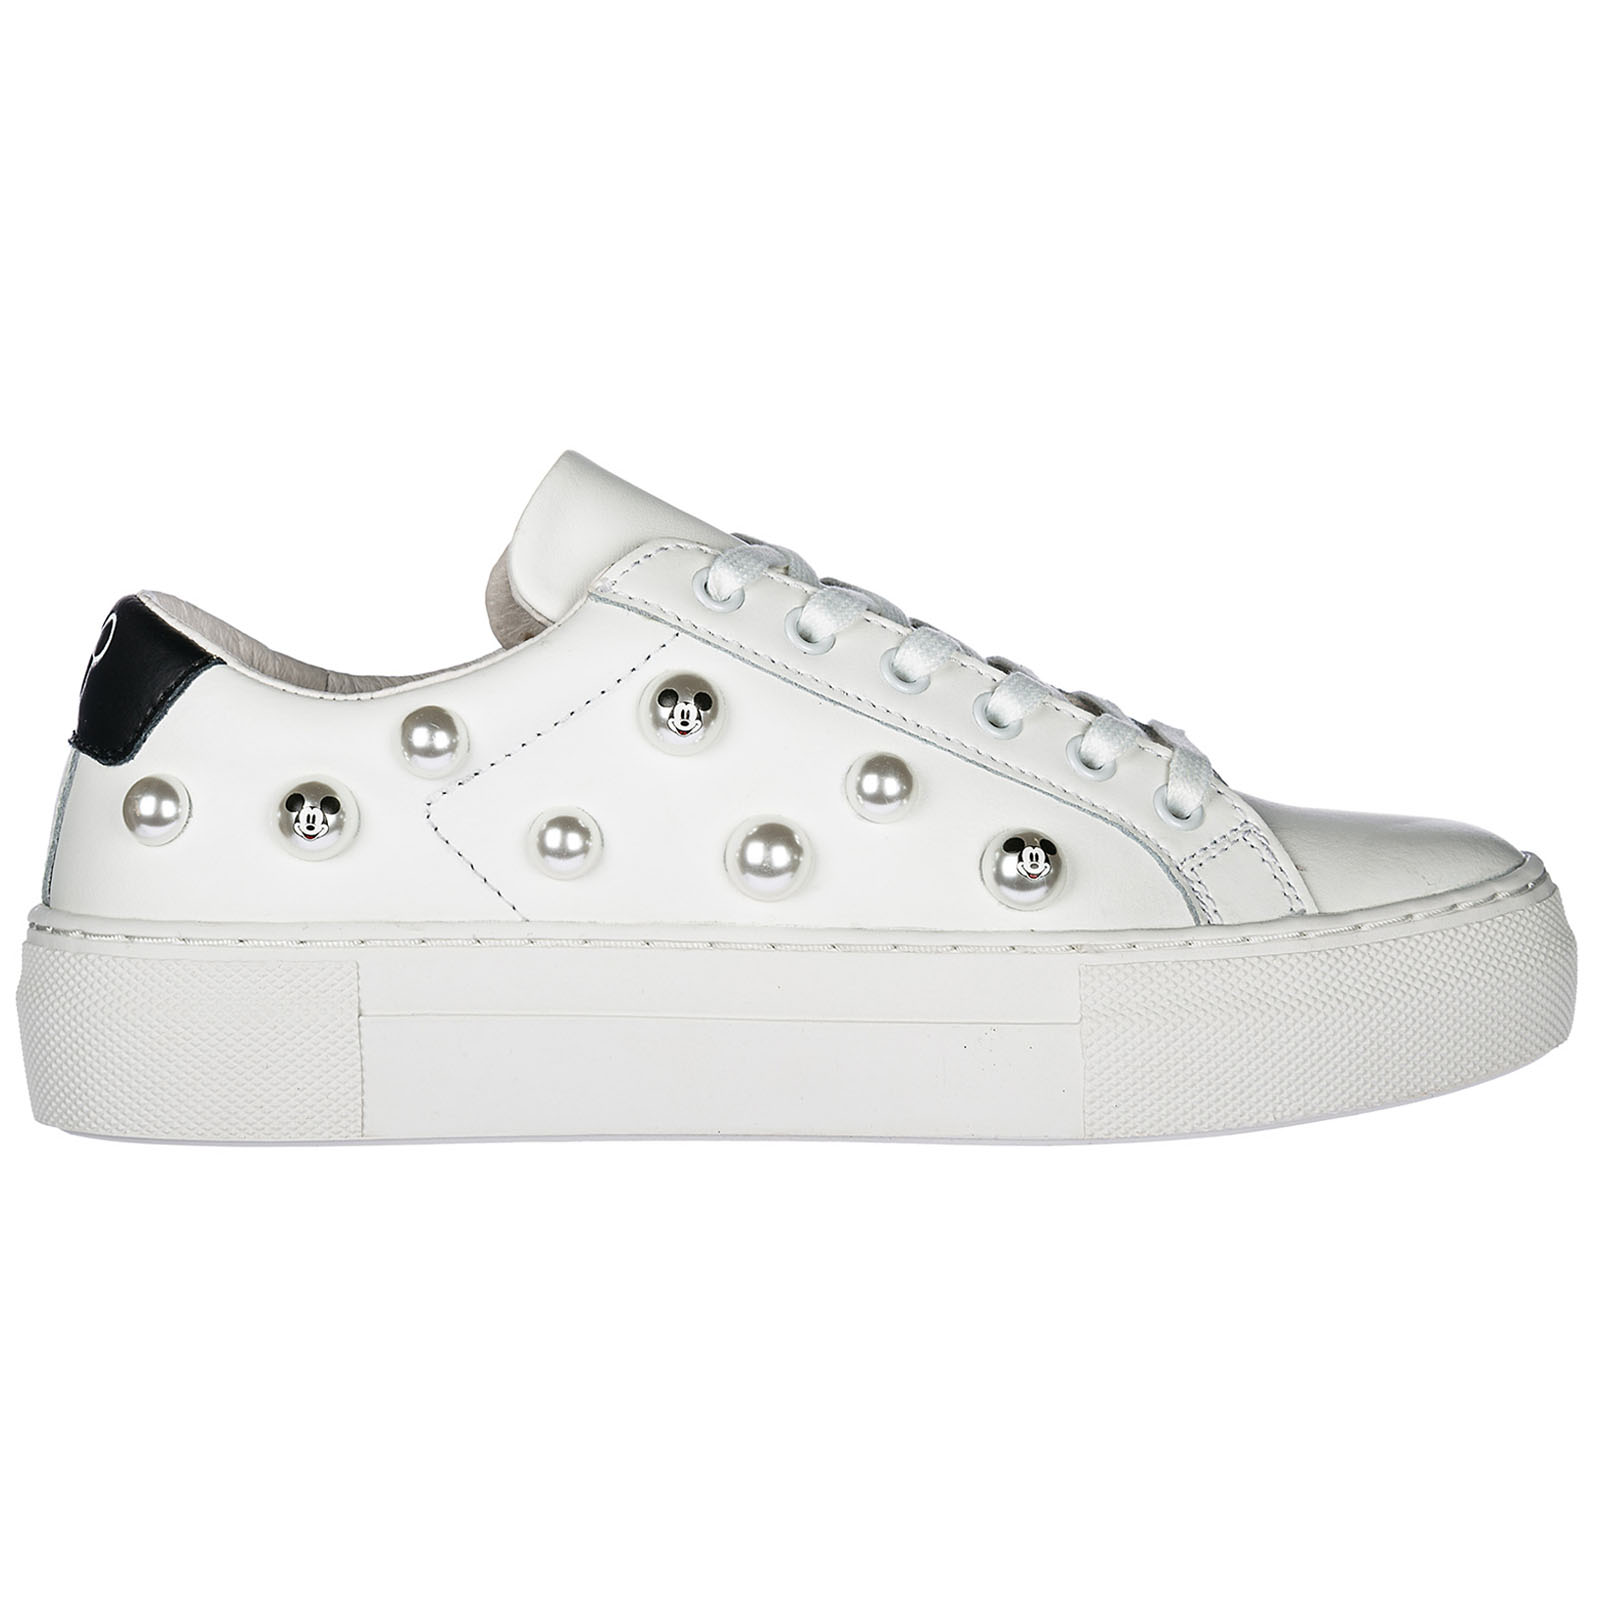 WOMEN'S SHOES LEATHER TRAINERS SNEAKERS DISNEY CLOUD PEARL